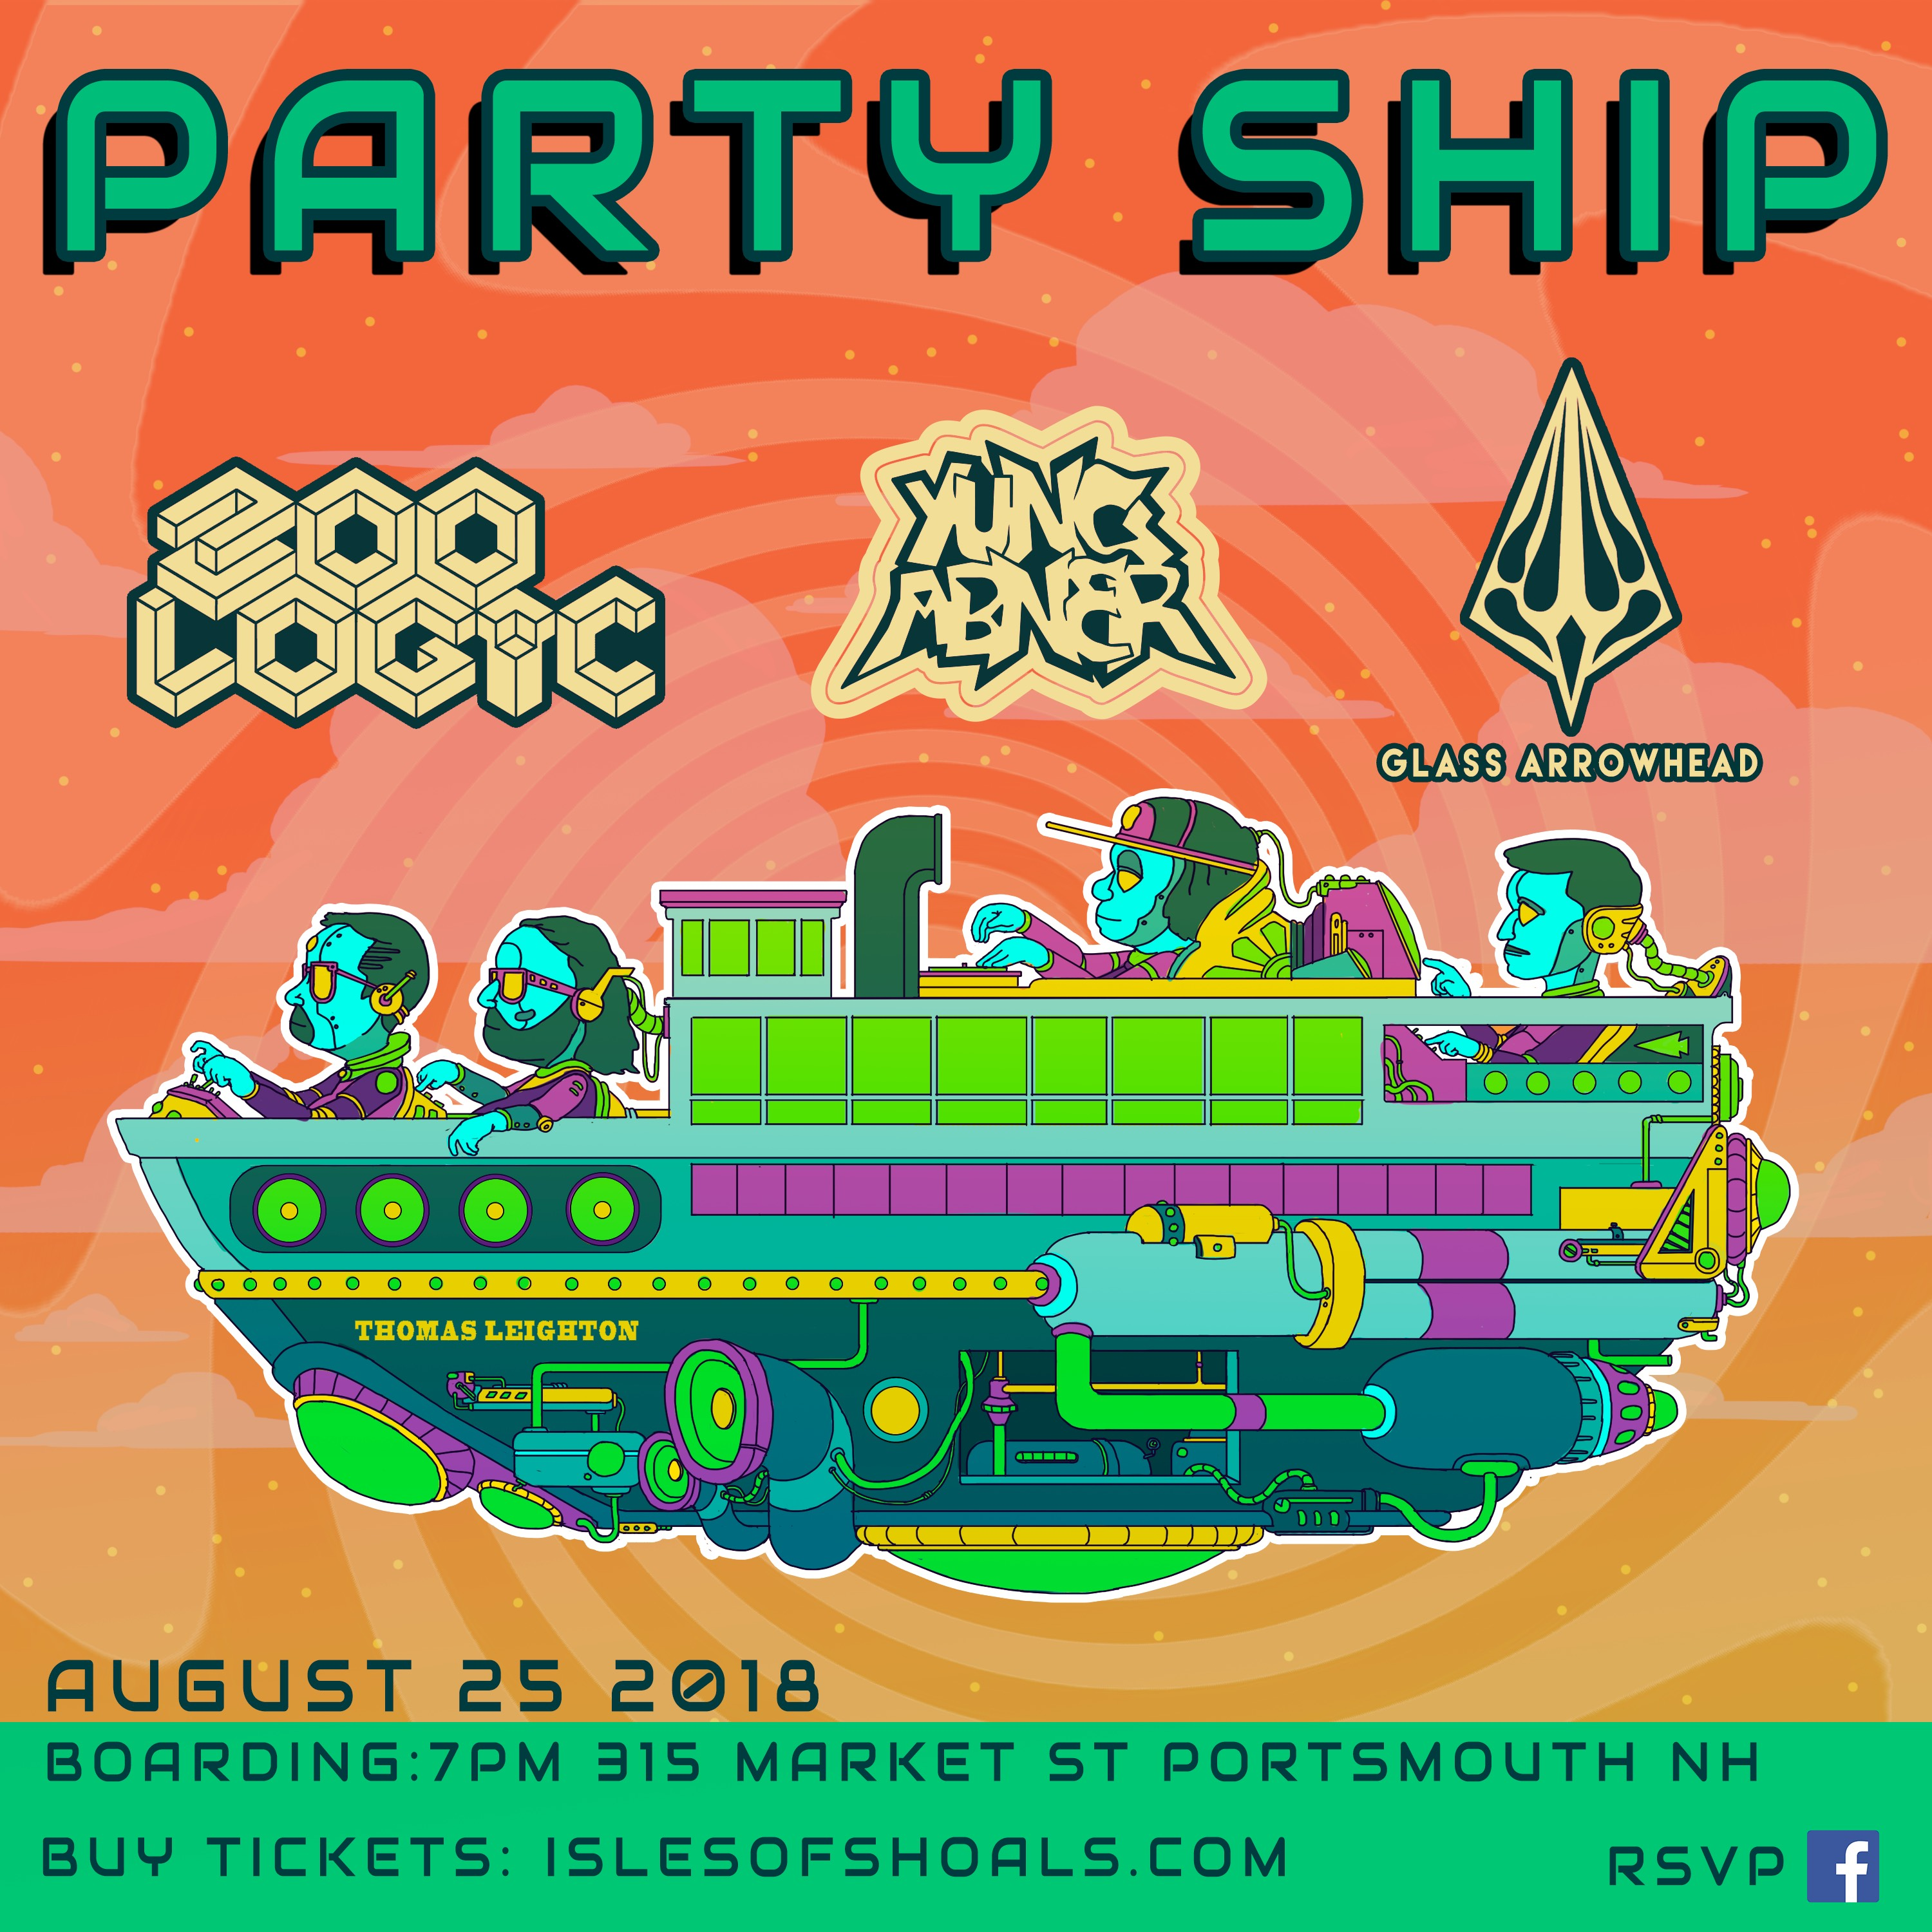 Party Ship w/ Zoo Logic,  Yung Abner and Glass Arrowhead Image